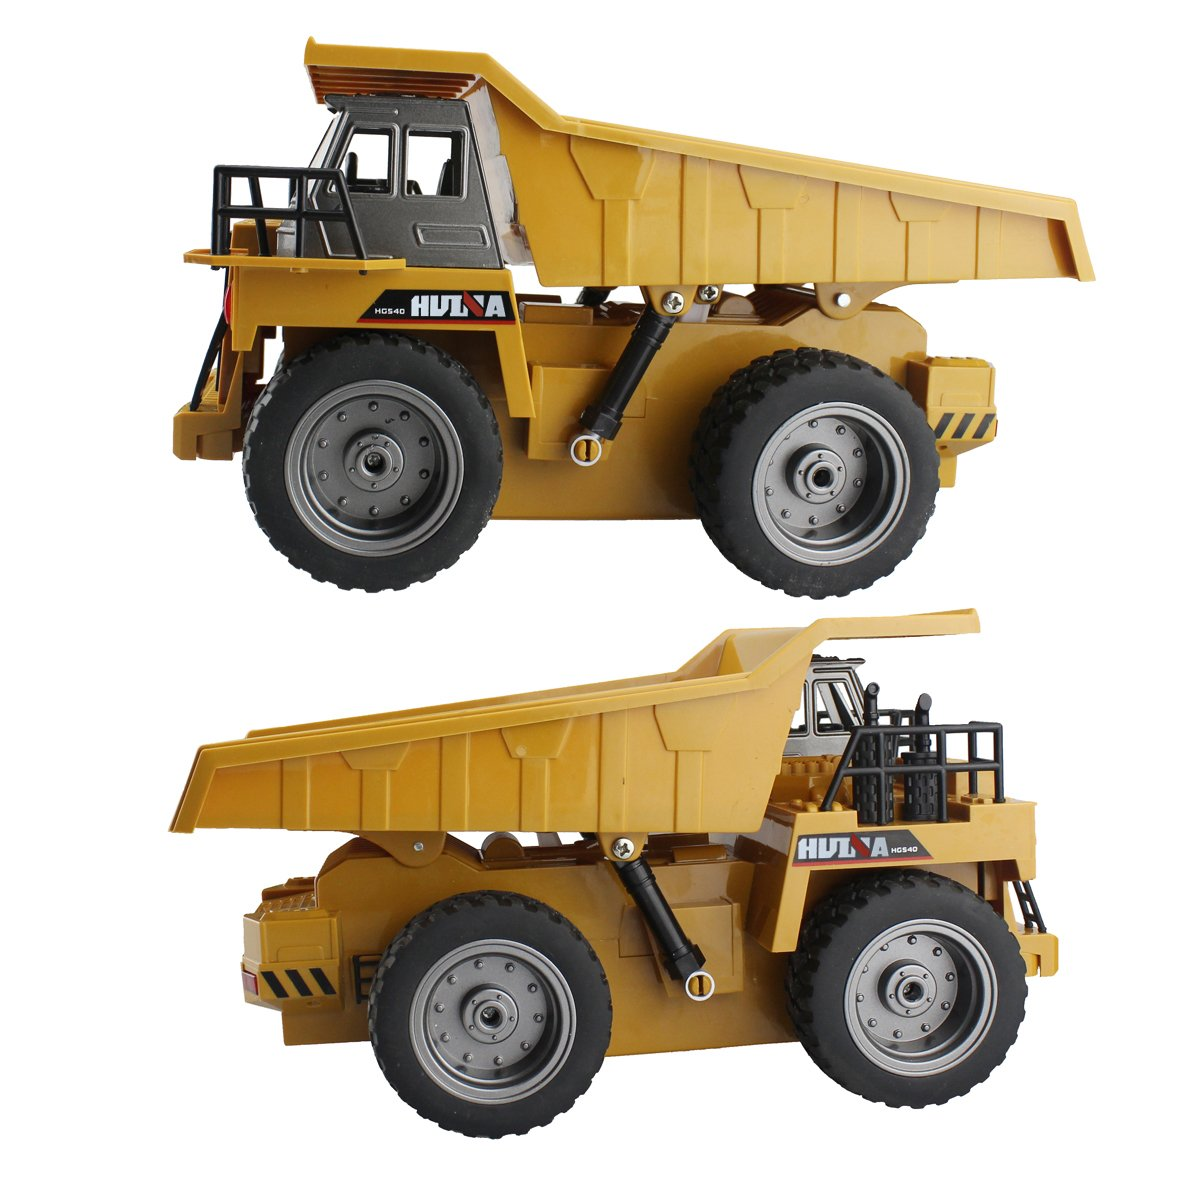 fisca RC Truck 6 Ch 2.4G Alloy Remote Control Dump Truck 4 Wheel Driver Mine Construction Vehicle Toy Machine Model with LED Light by fisca (Image #2)